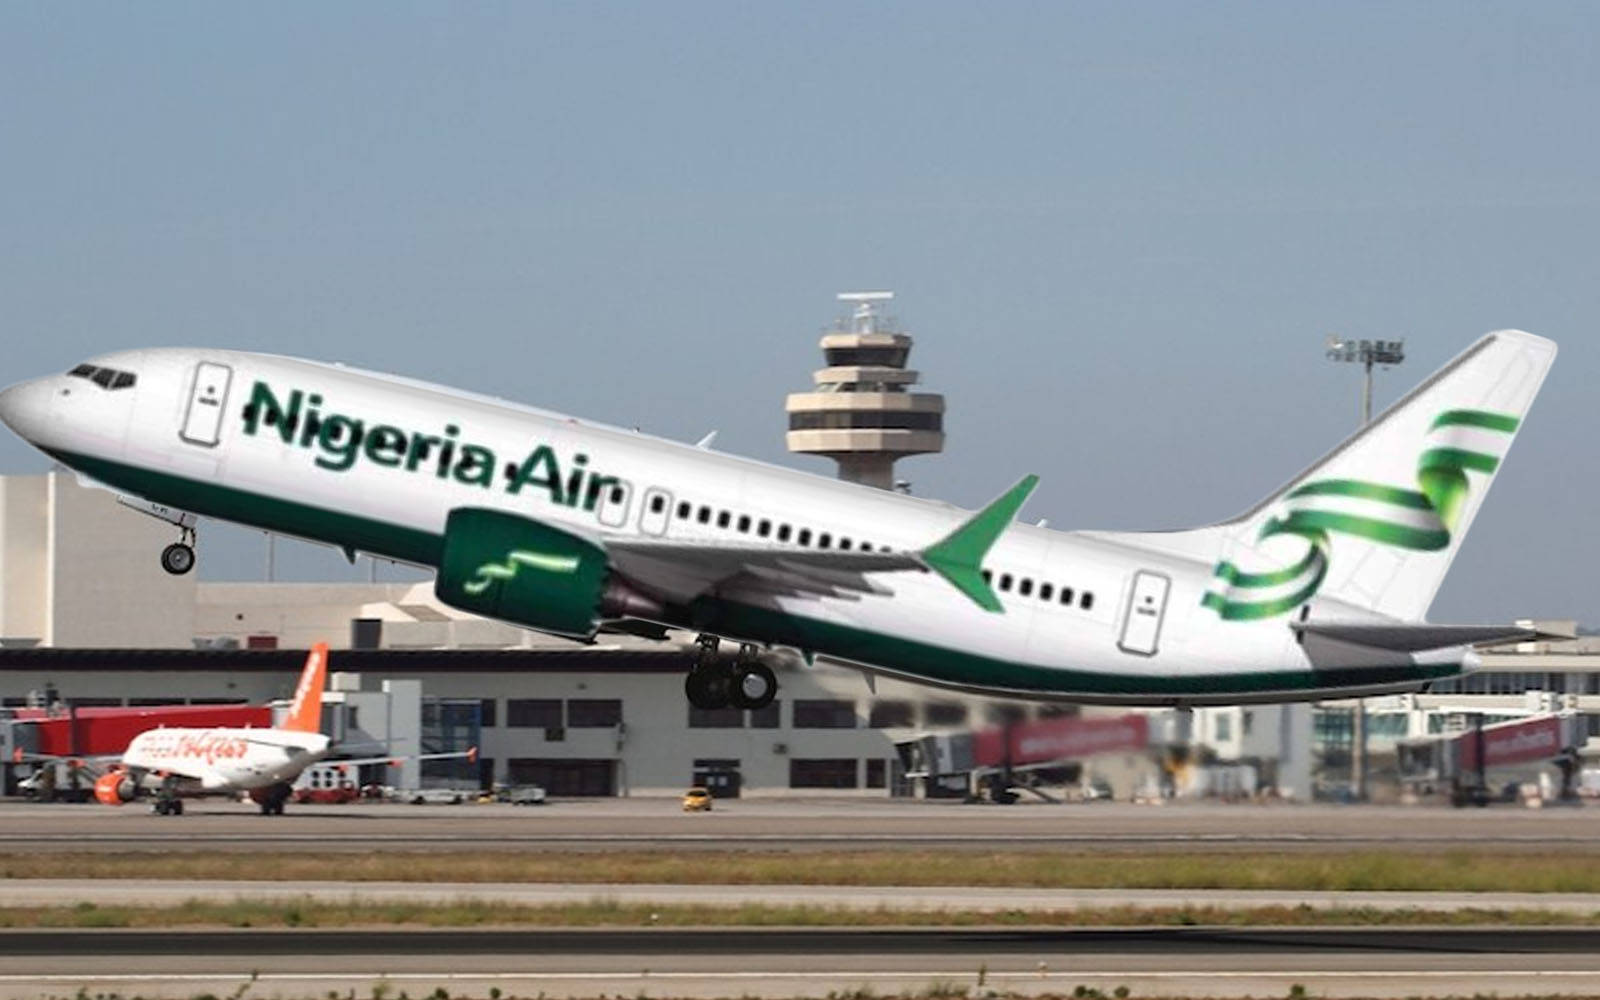 Nigeria Air project suspended indefinitely